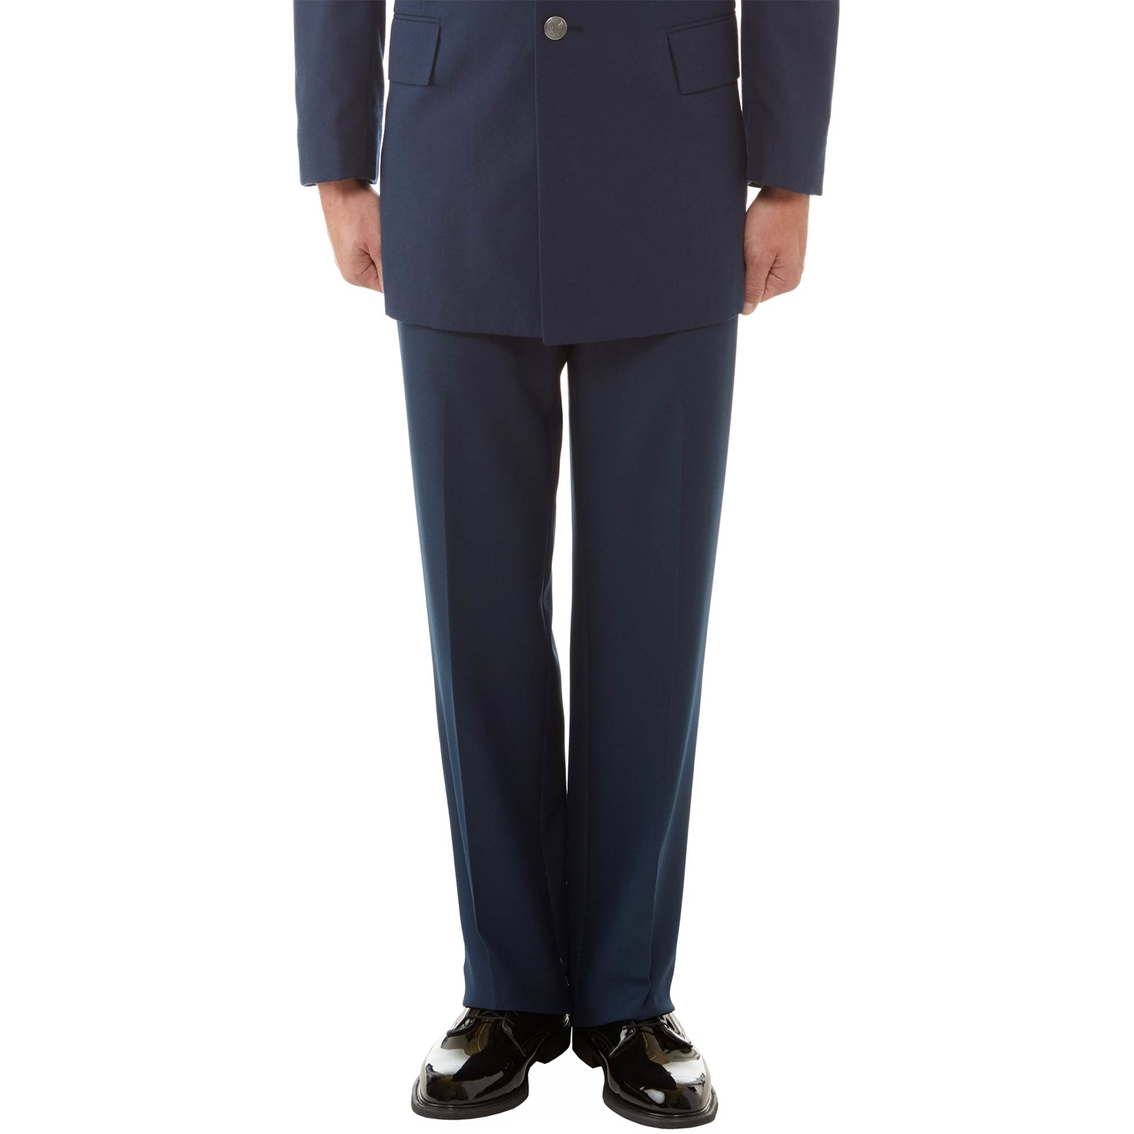 Dress blue trousers